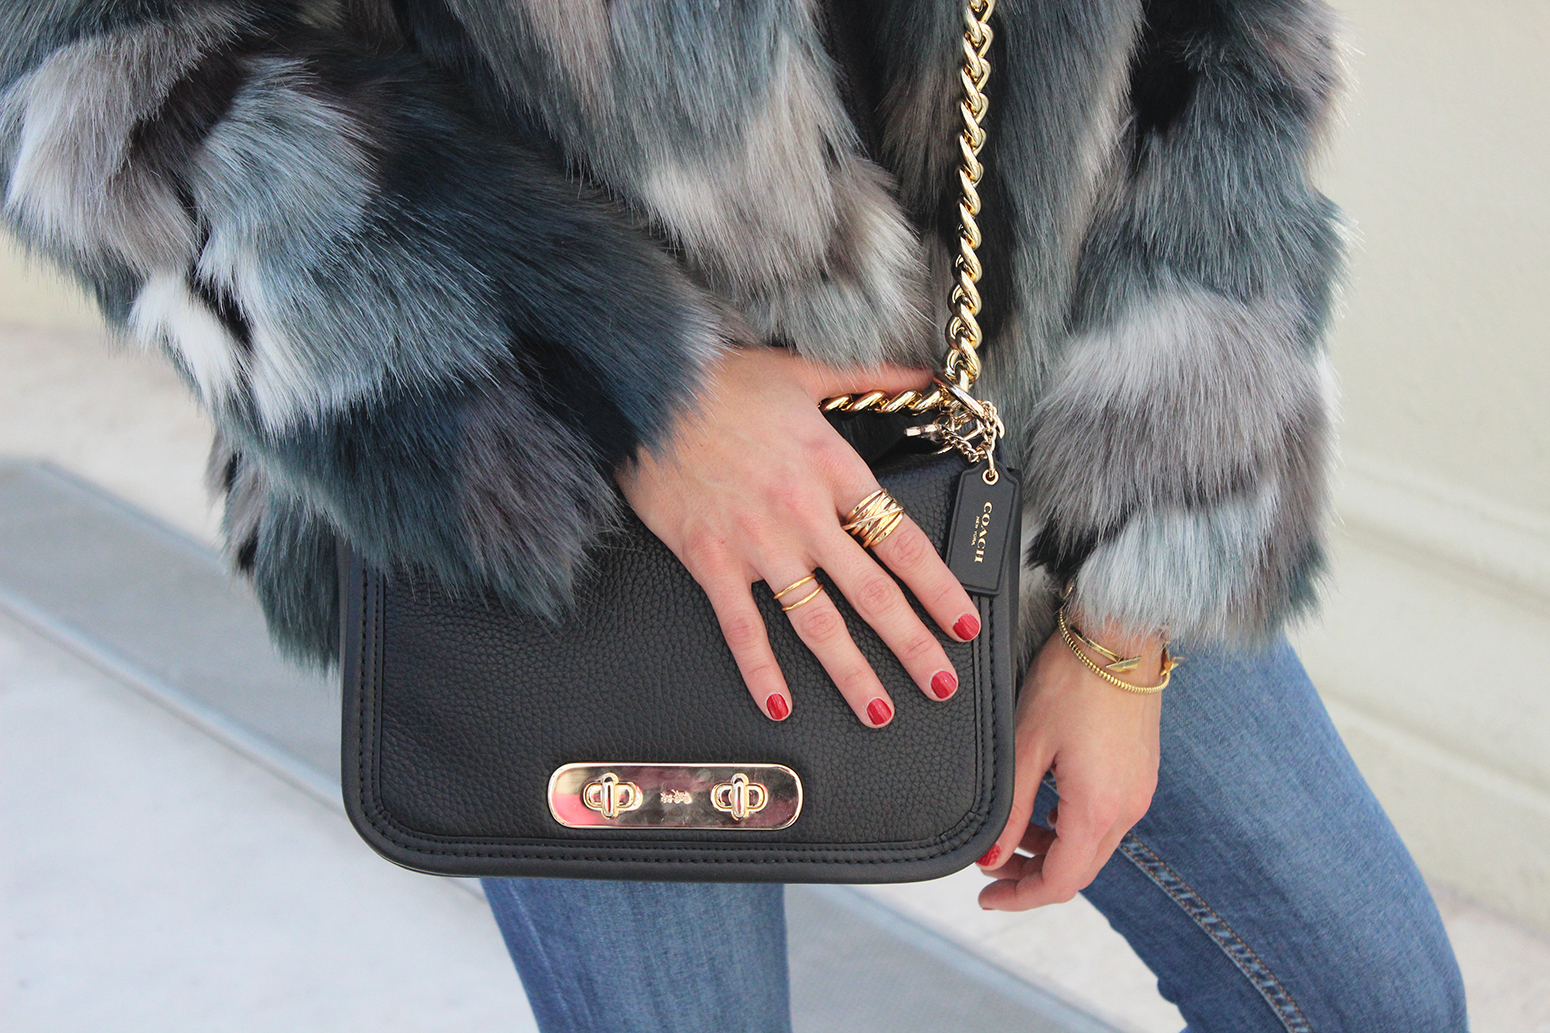 faux fur coat jeans pretty ballerinas black flats coach bag casual outfit fashion style12